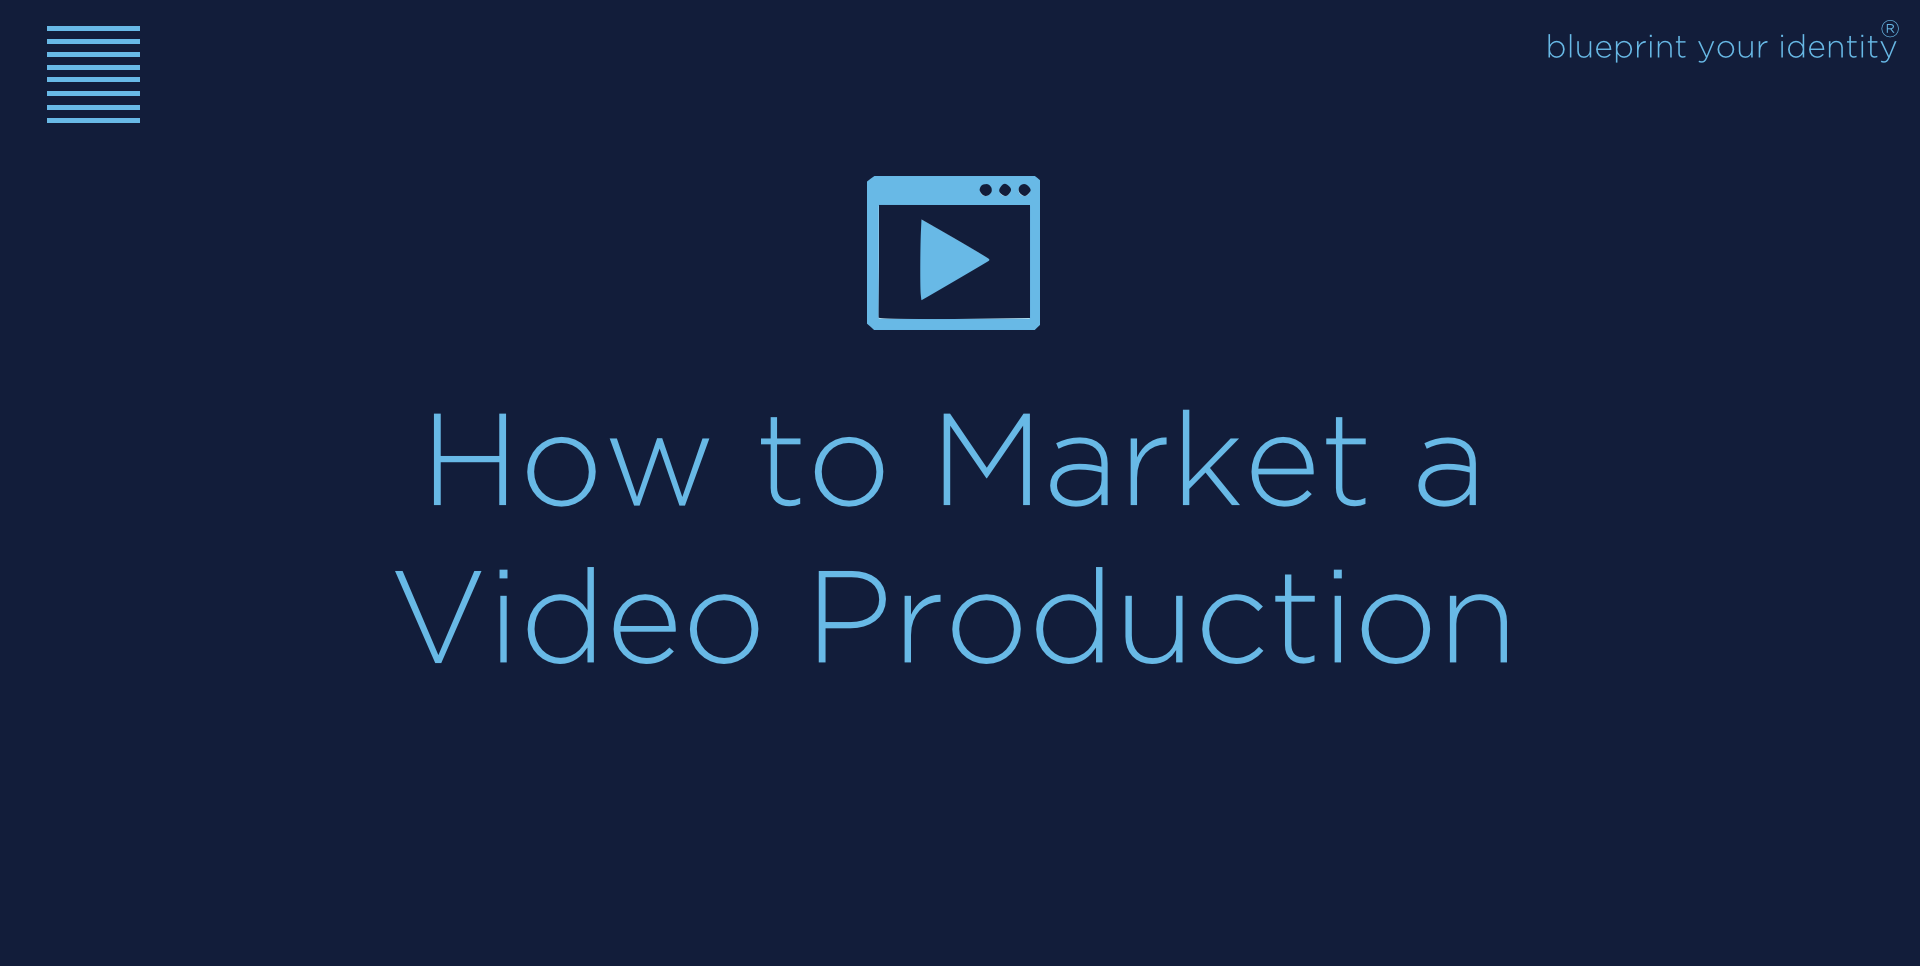 How_to_Market_a_Video_Production.png